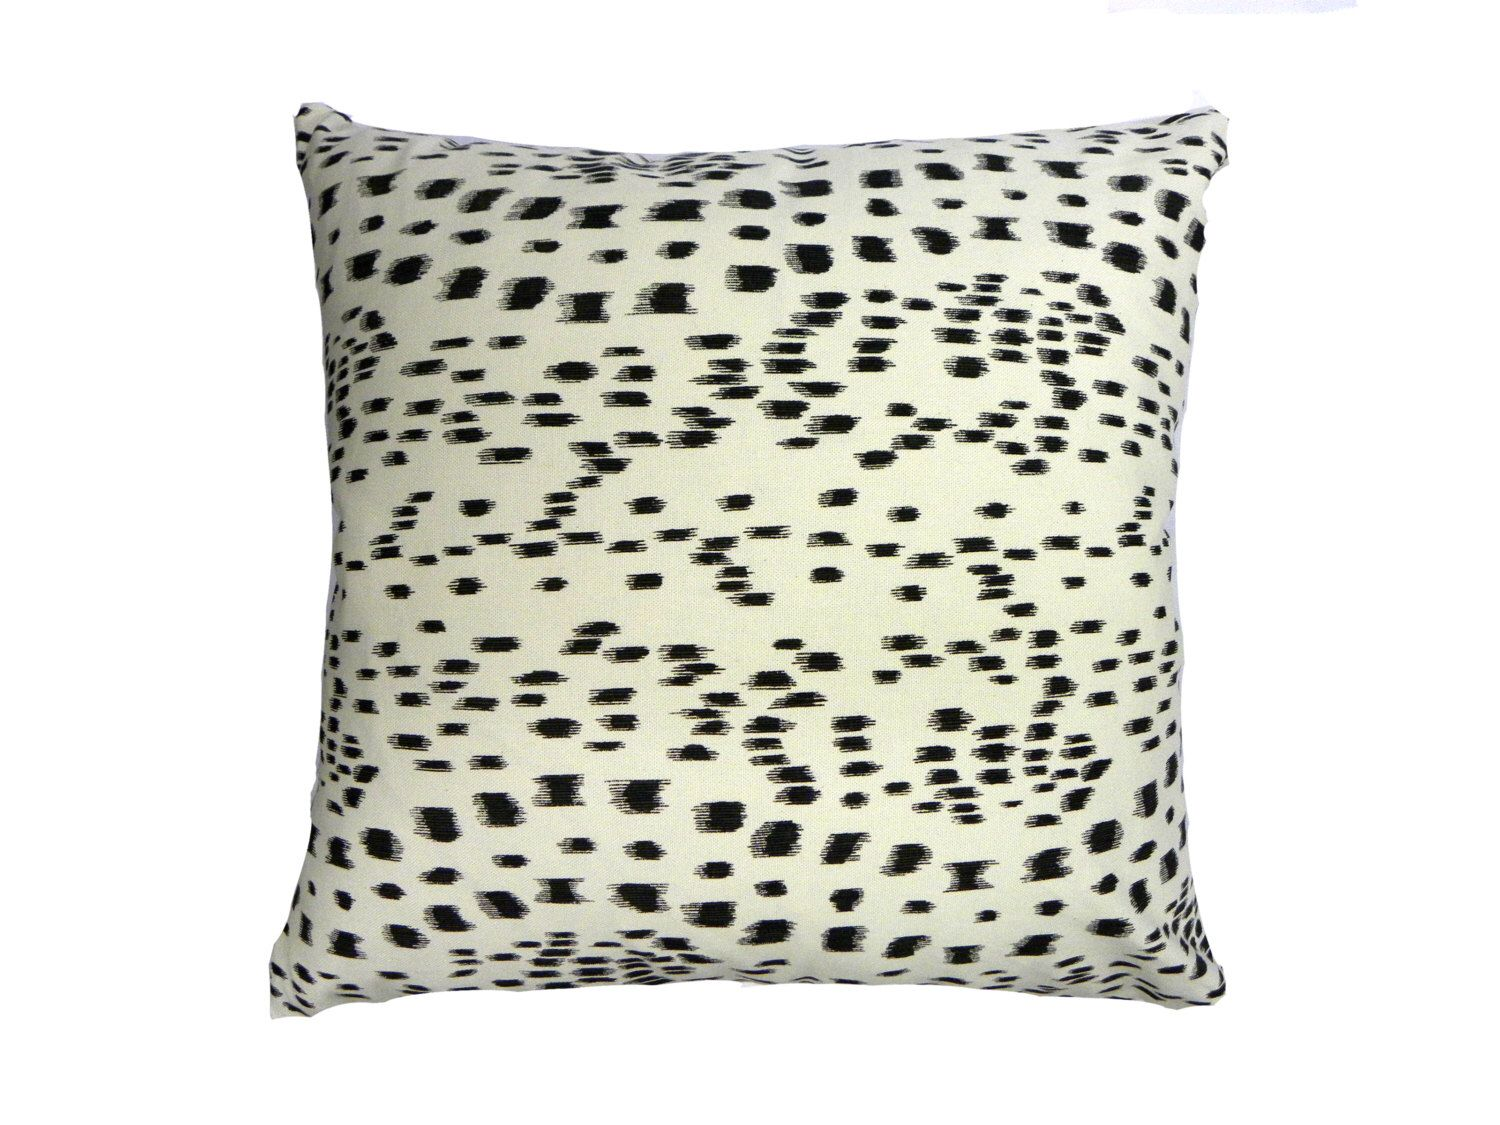 Oversized Dalmatian Dash Pillow Cover - Large Neutral Black and ...